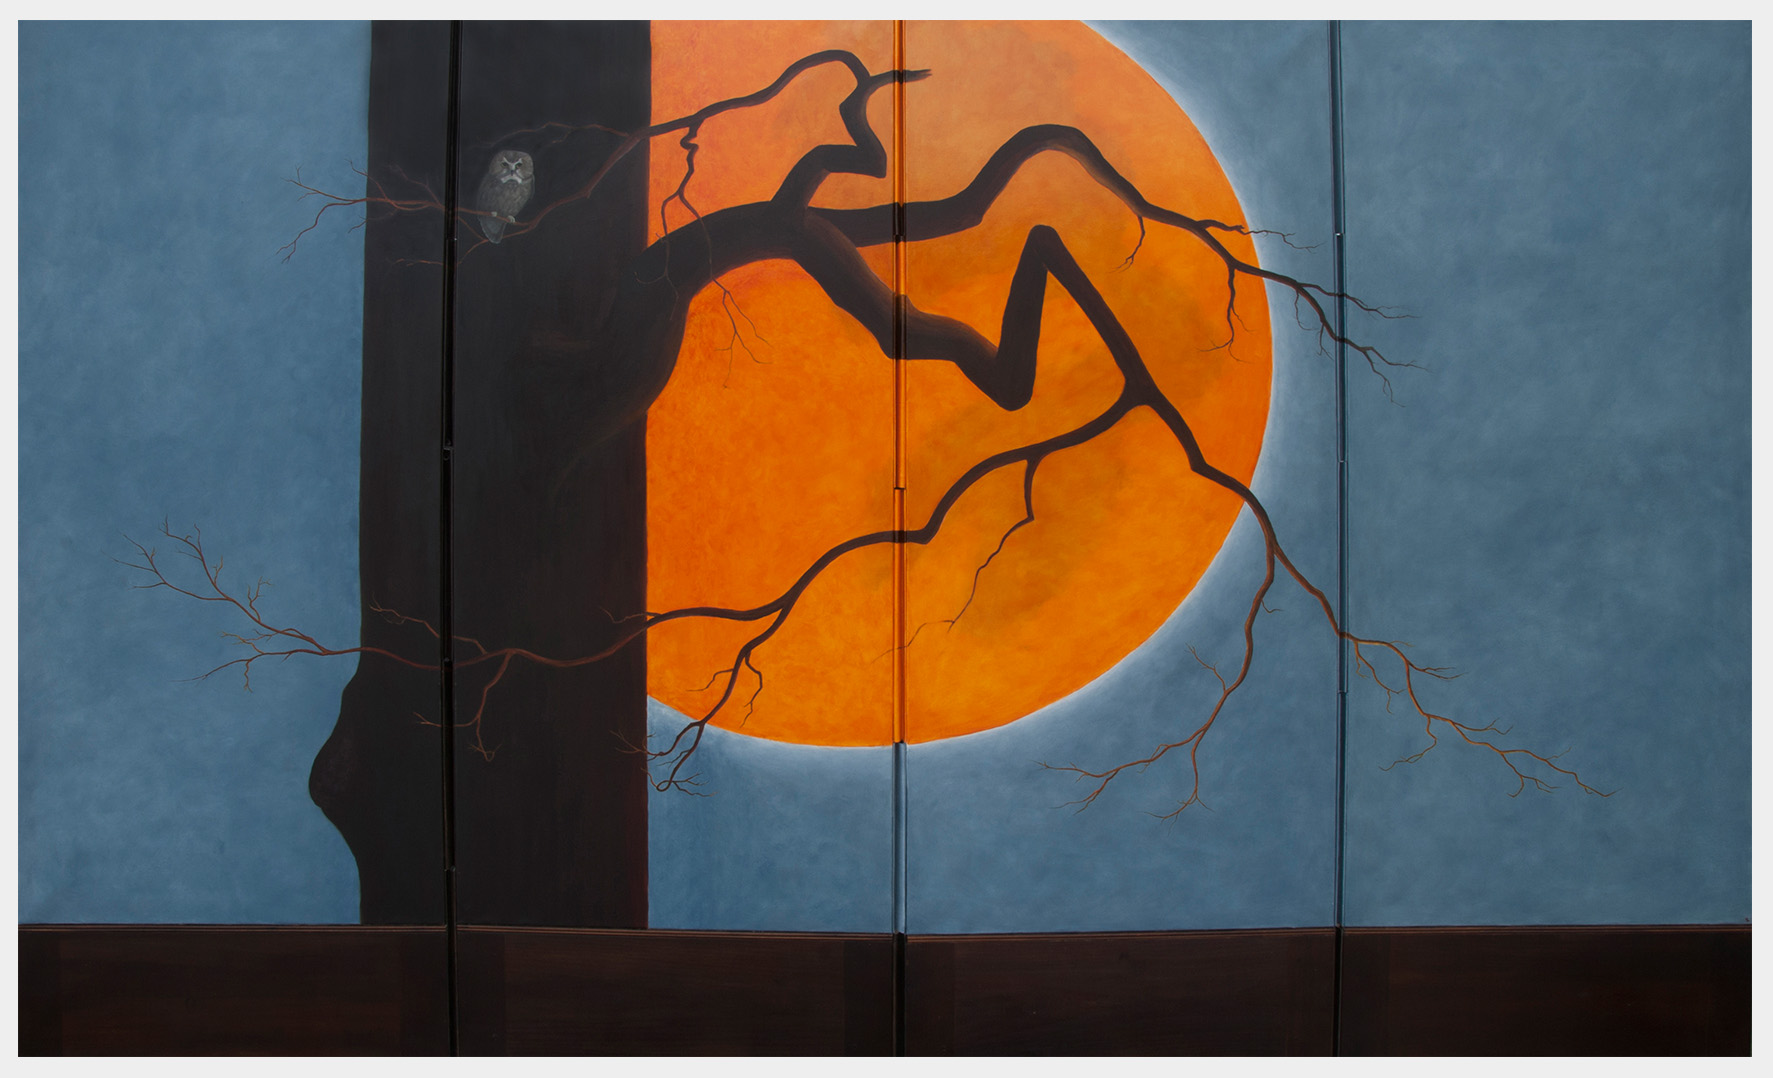 Realistic oil painting as a four-fold screen of an orange full moon rising behind a leafless tree with a small owl perched on a branch